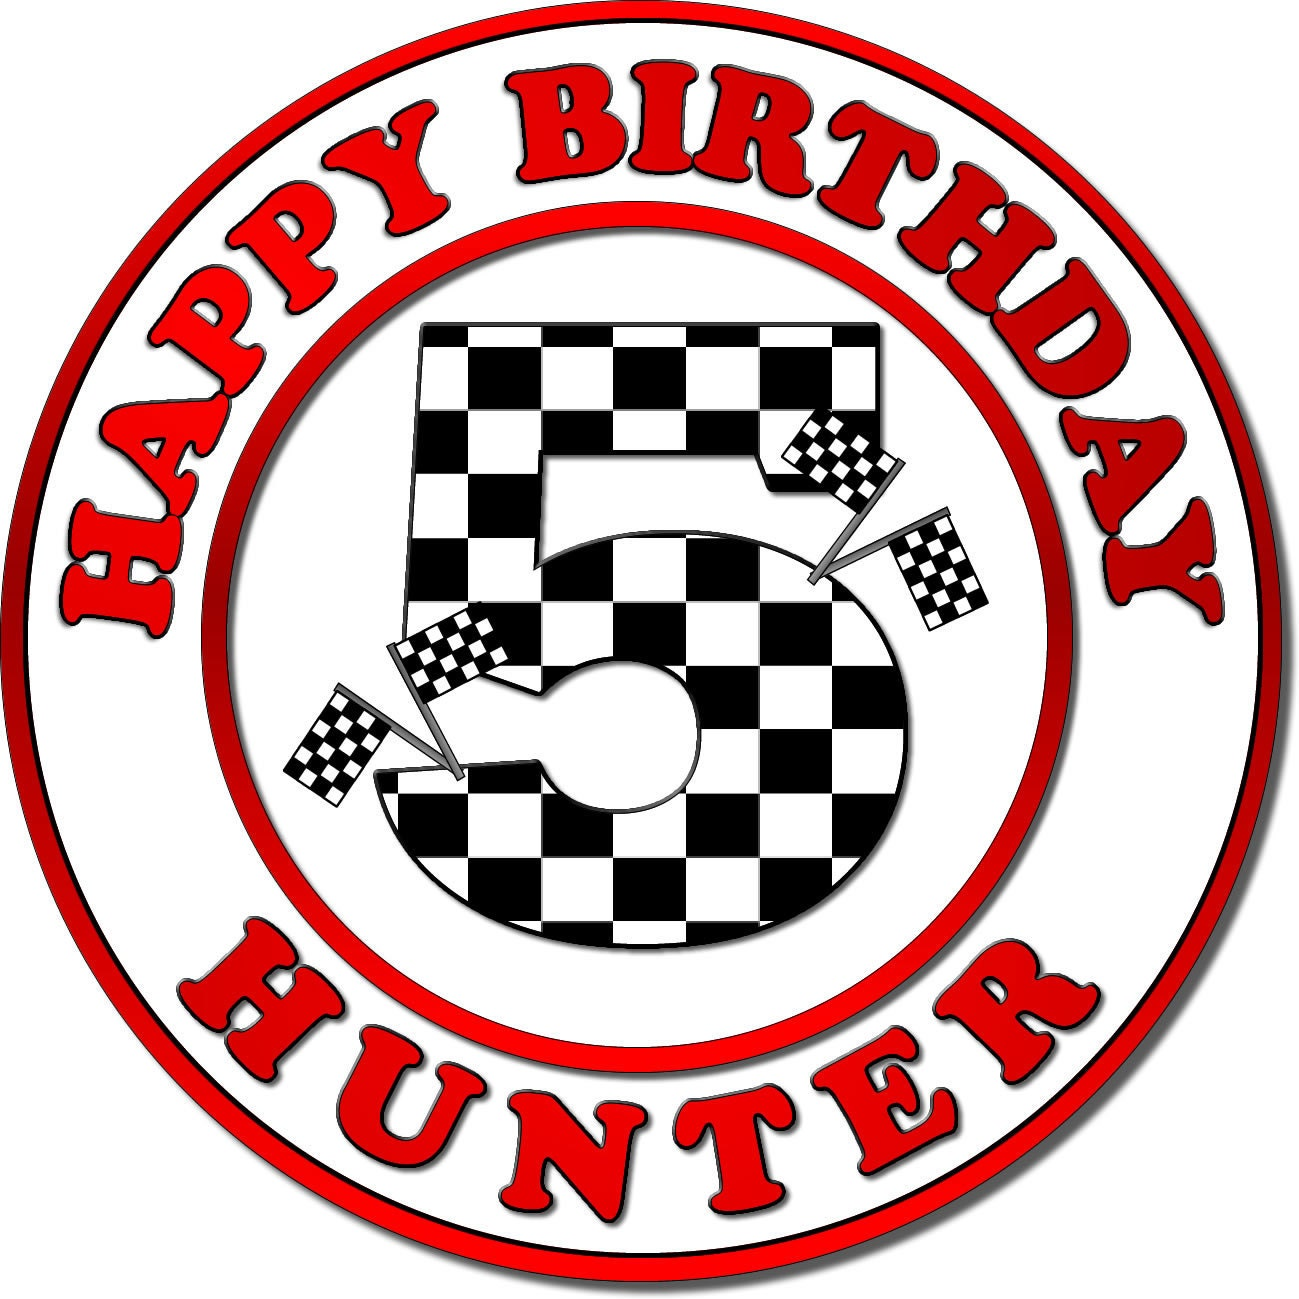 Custom Checkered Flags Motif Race Car Stickers Race Car Birthday